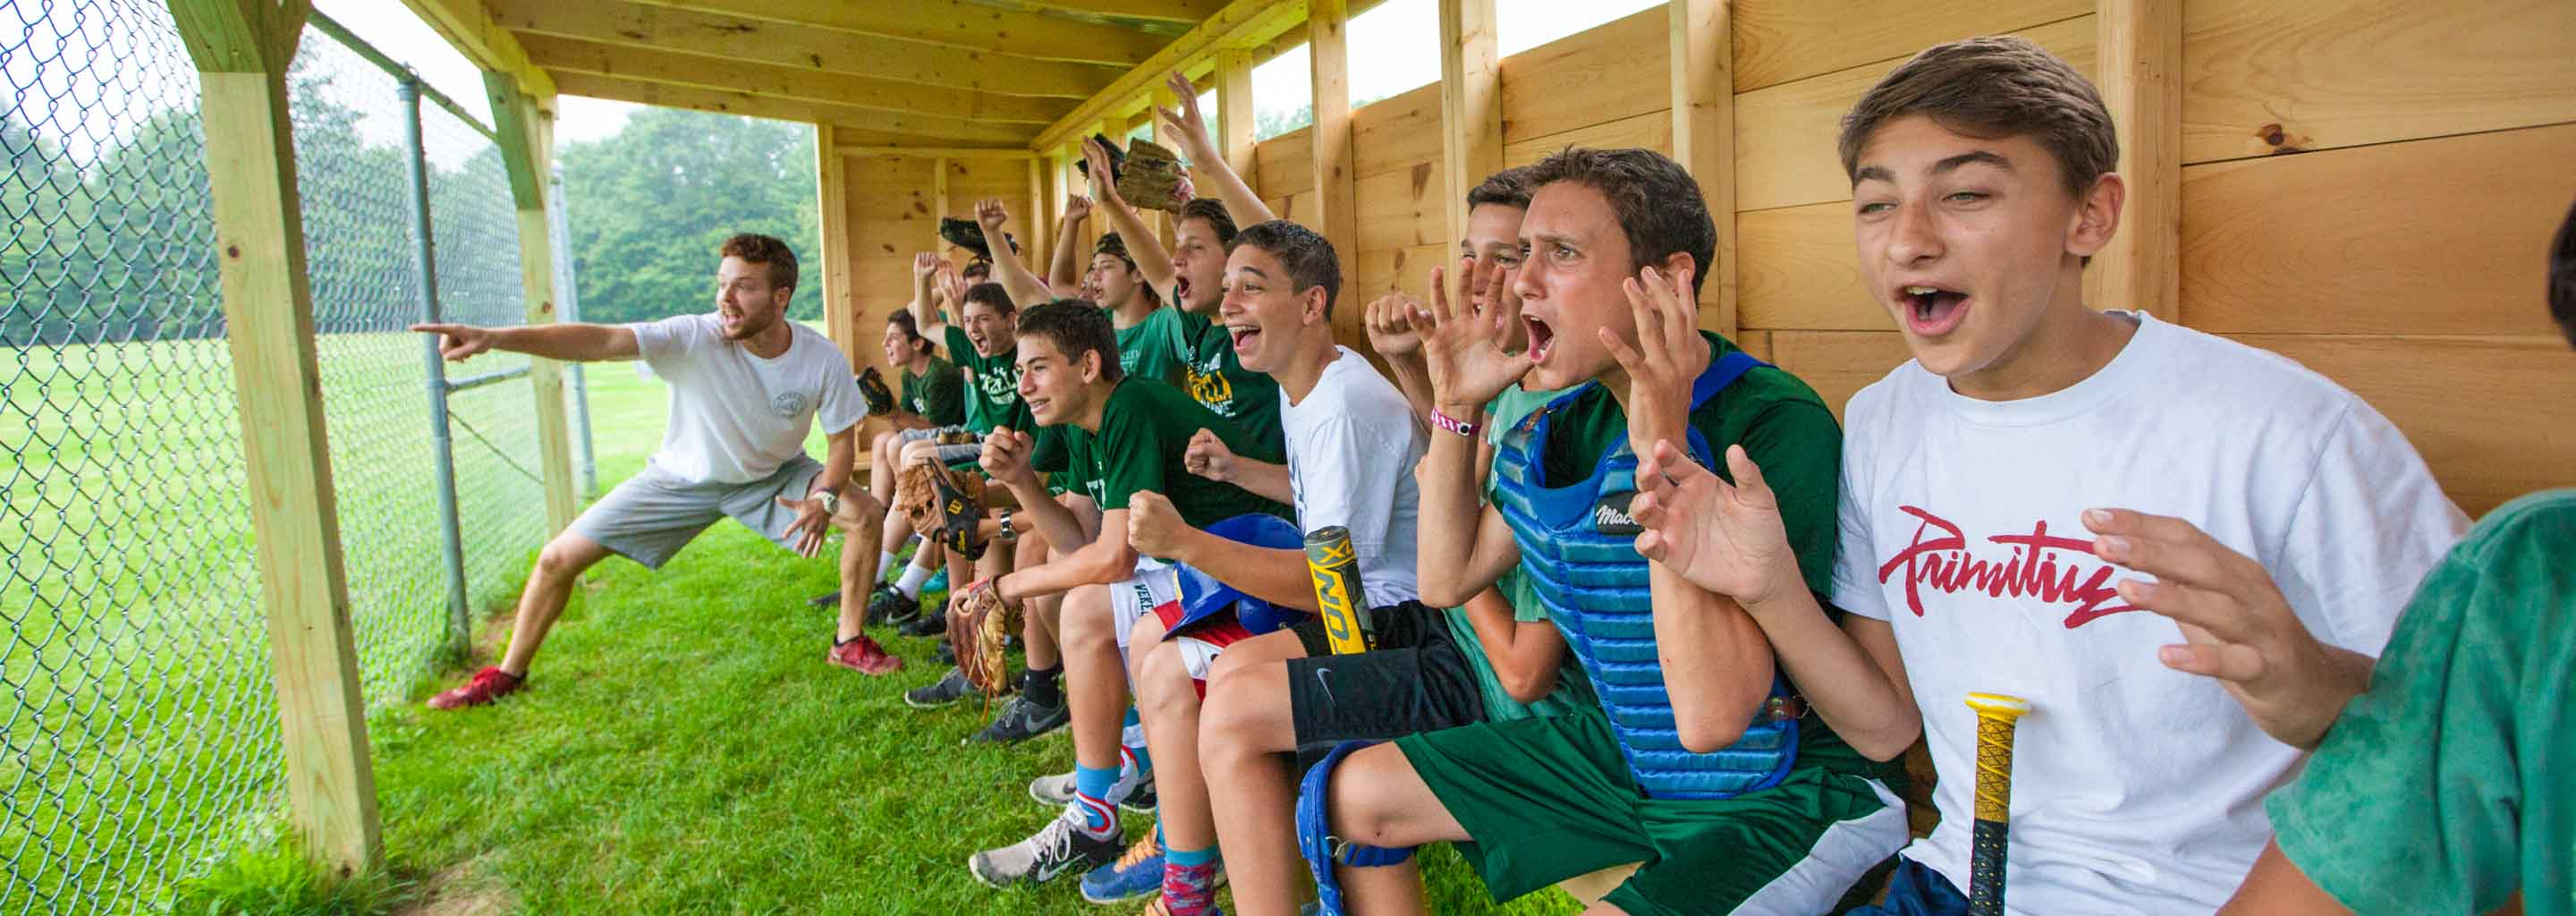 Boys goof around in USA dugout at camp